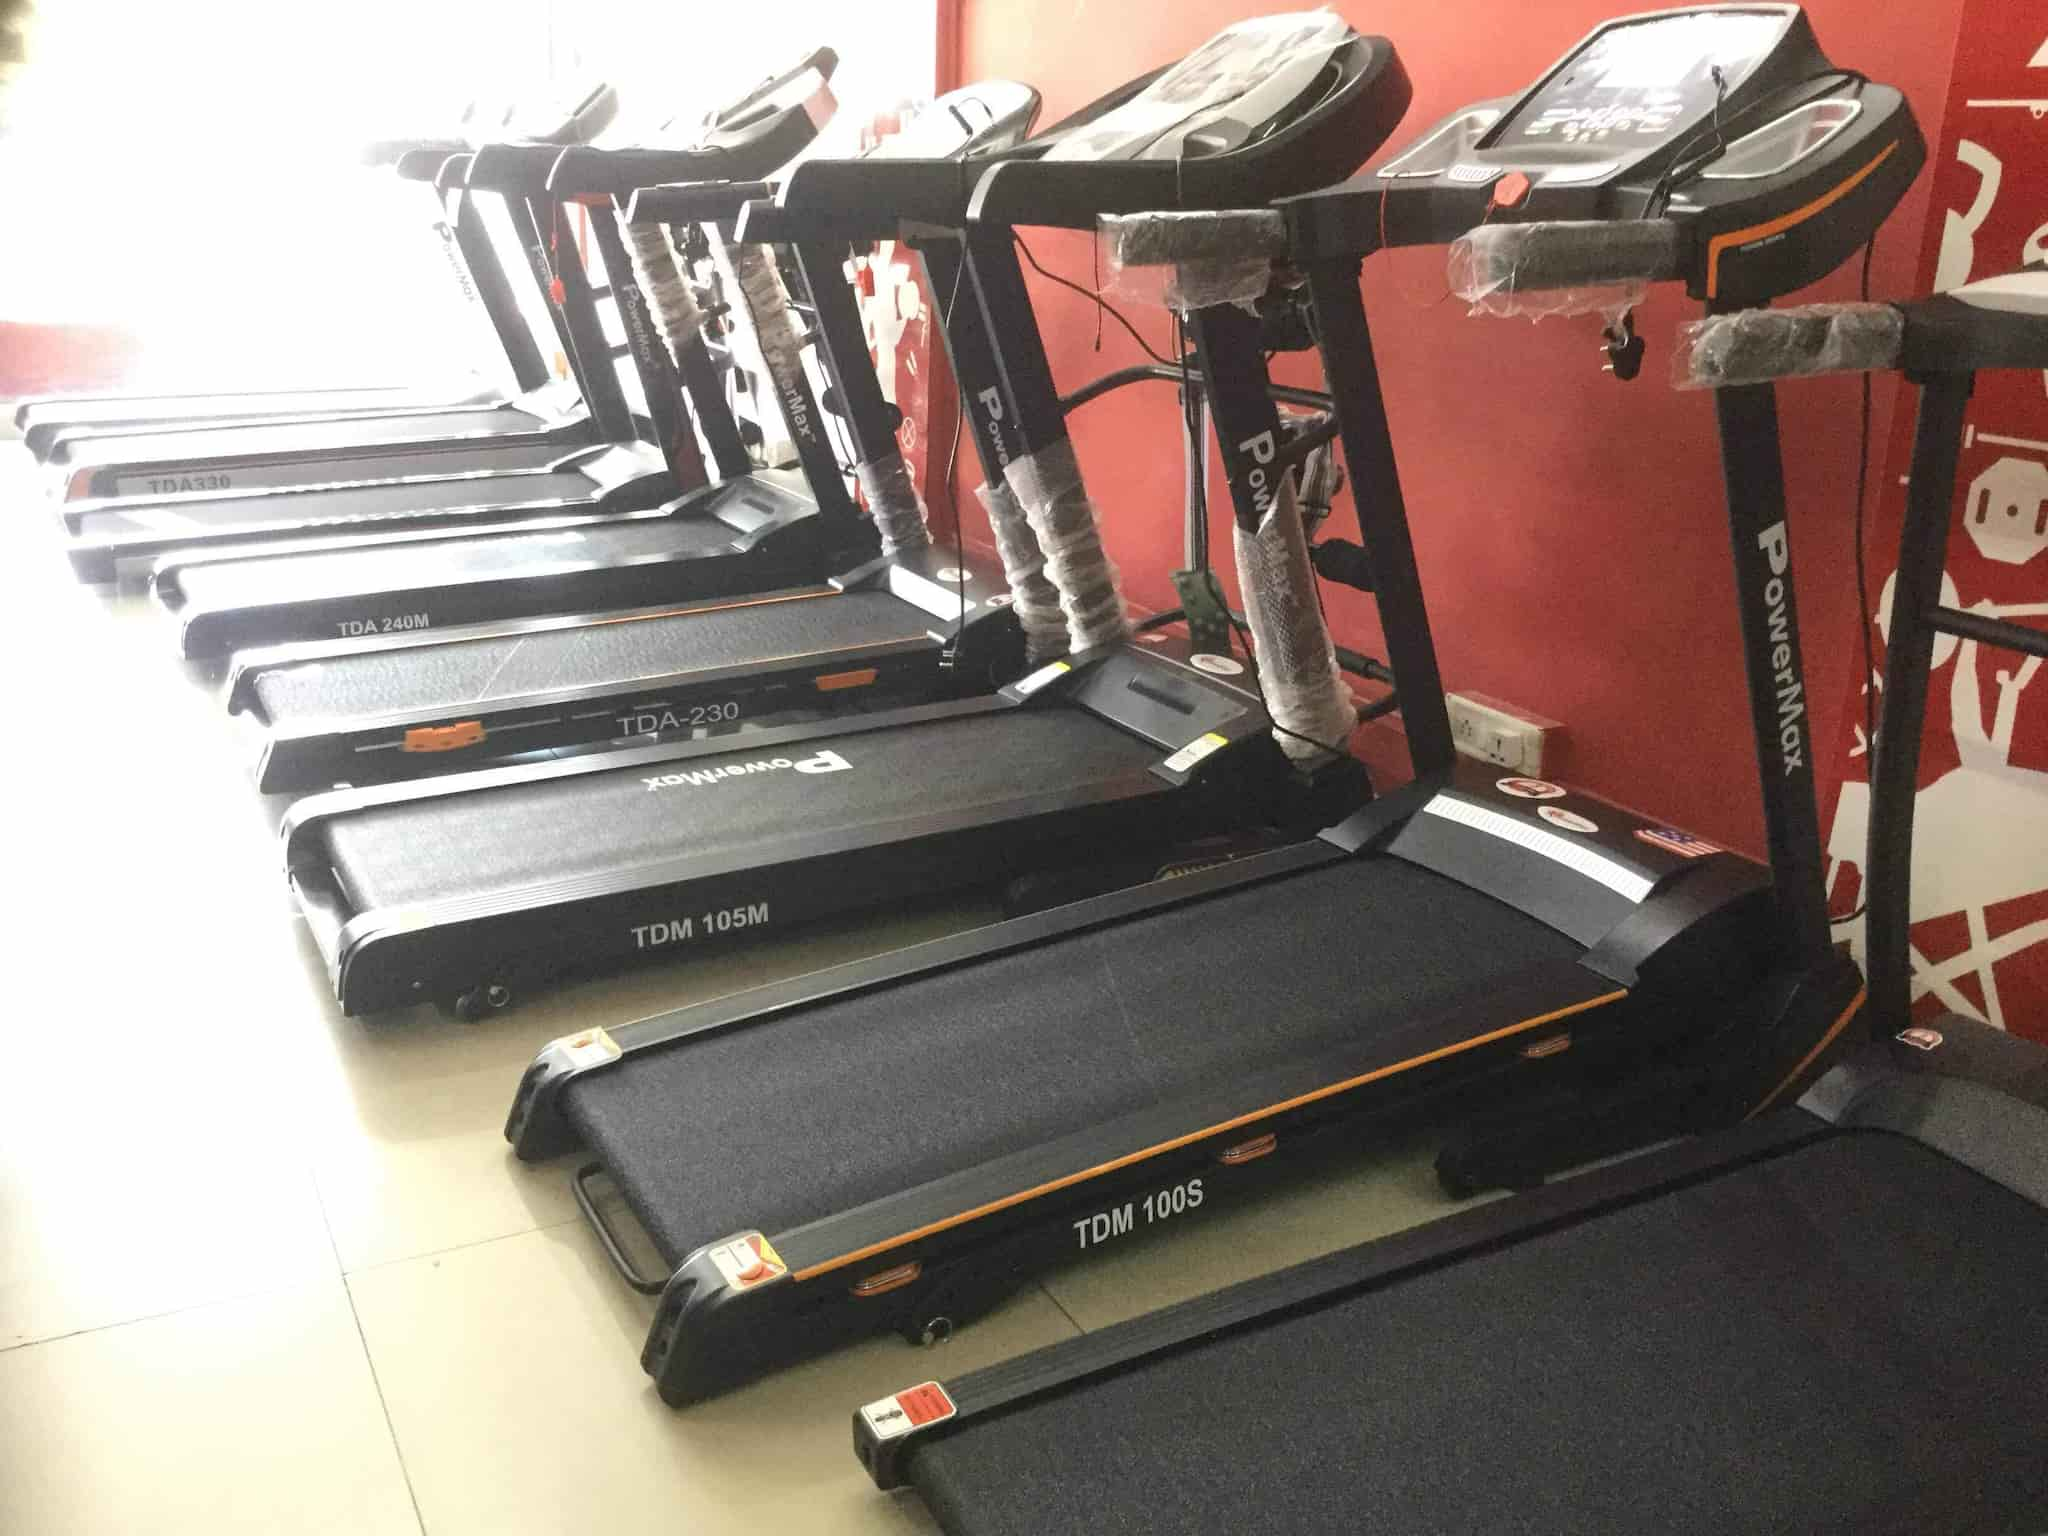 Energy Fitness And Sports Edapally Treadmill Repair Short Circuit Gymnasium Equipment Dealers In Ernakulam Justdial